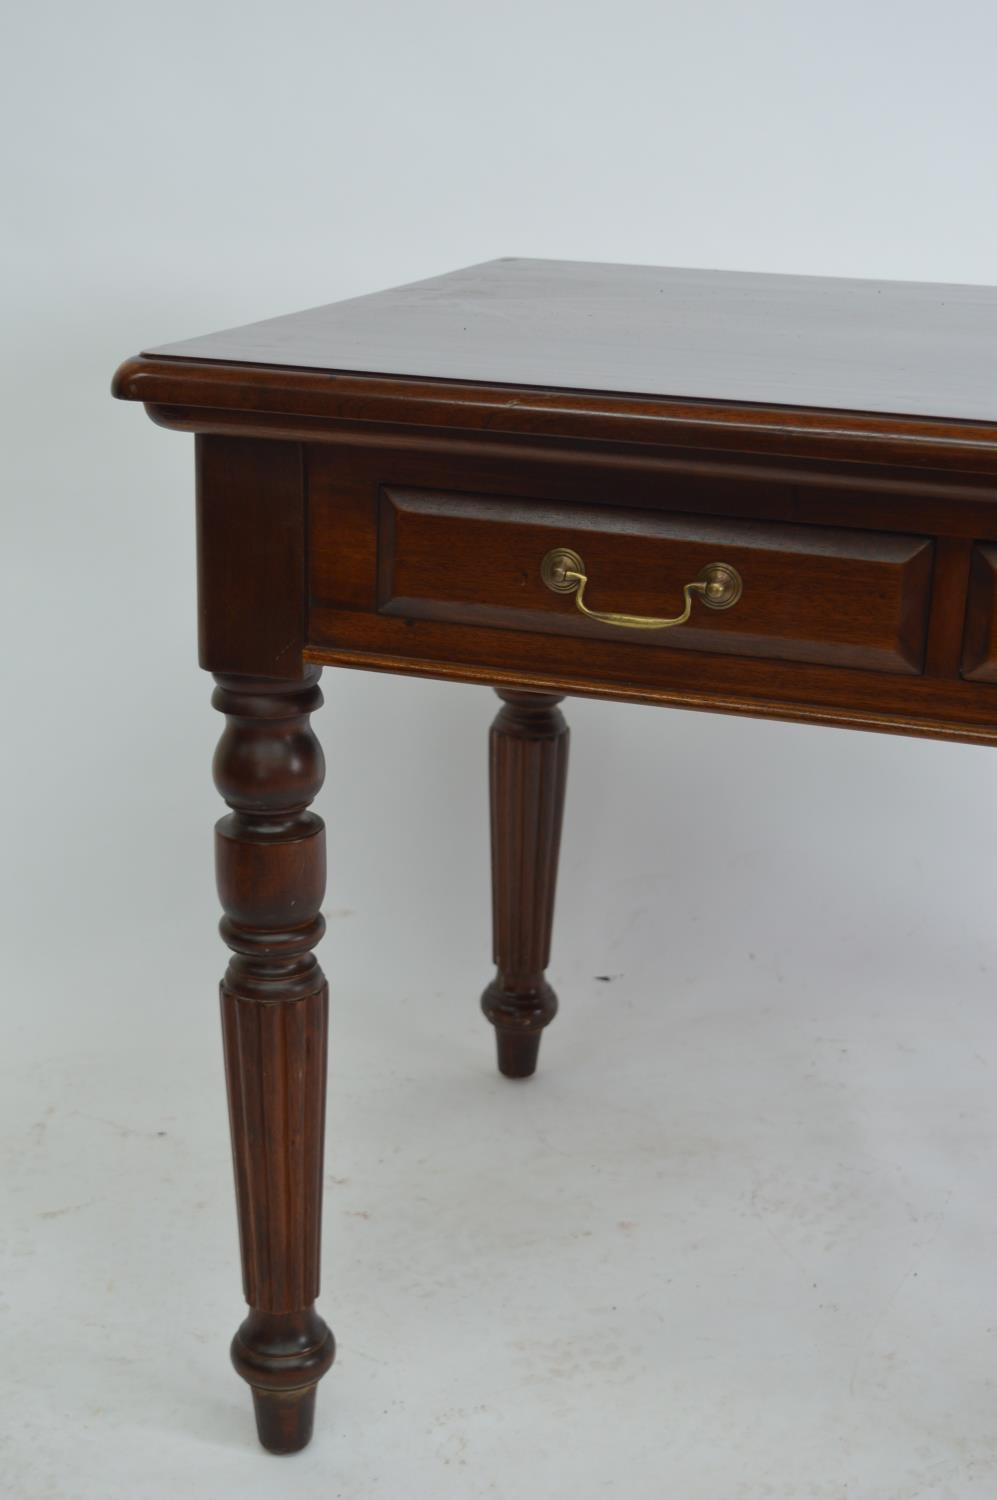 Mahogany side table. - Image 3 of 3